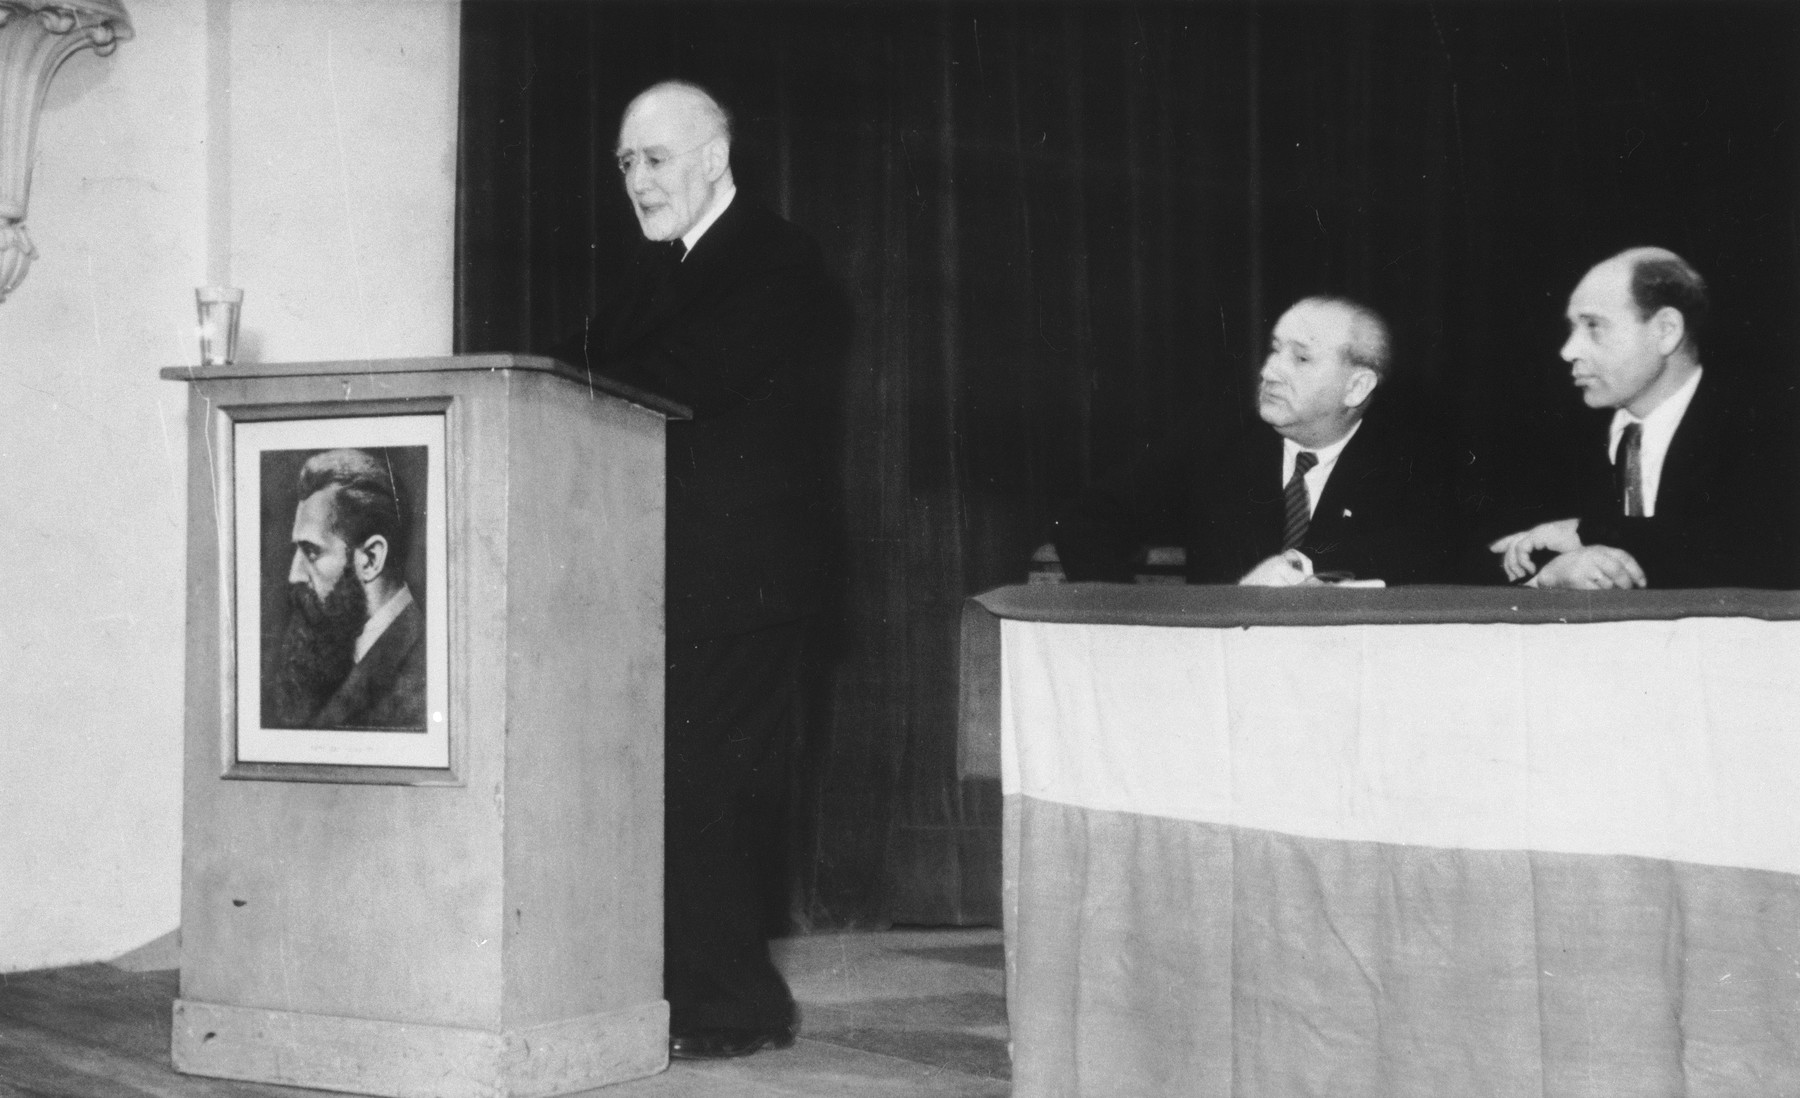 Rabbi Leo Baeck delivers a speech at a Zionist meeting in Hannover during his three week visit to Germany in the fall of 1948.